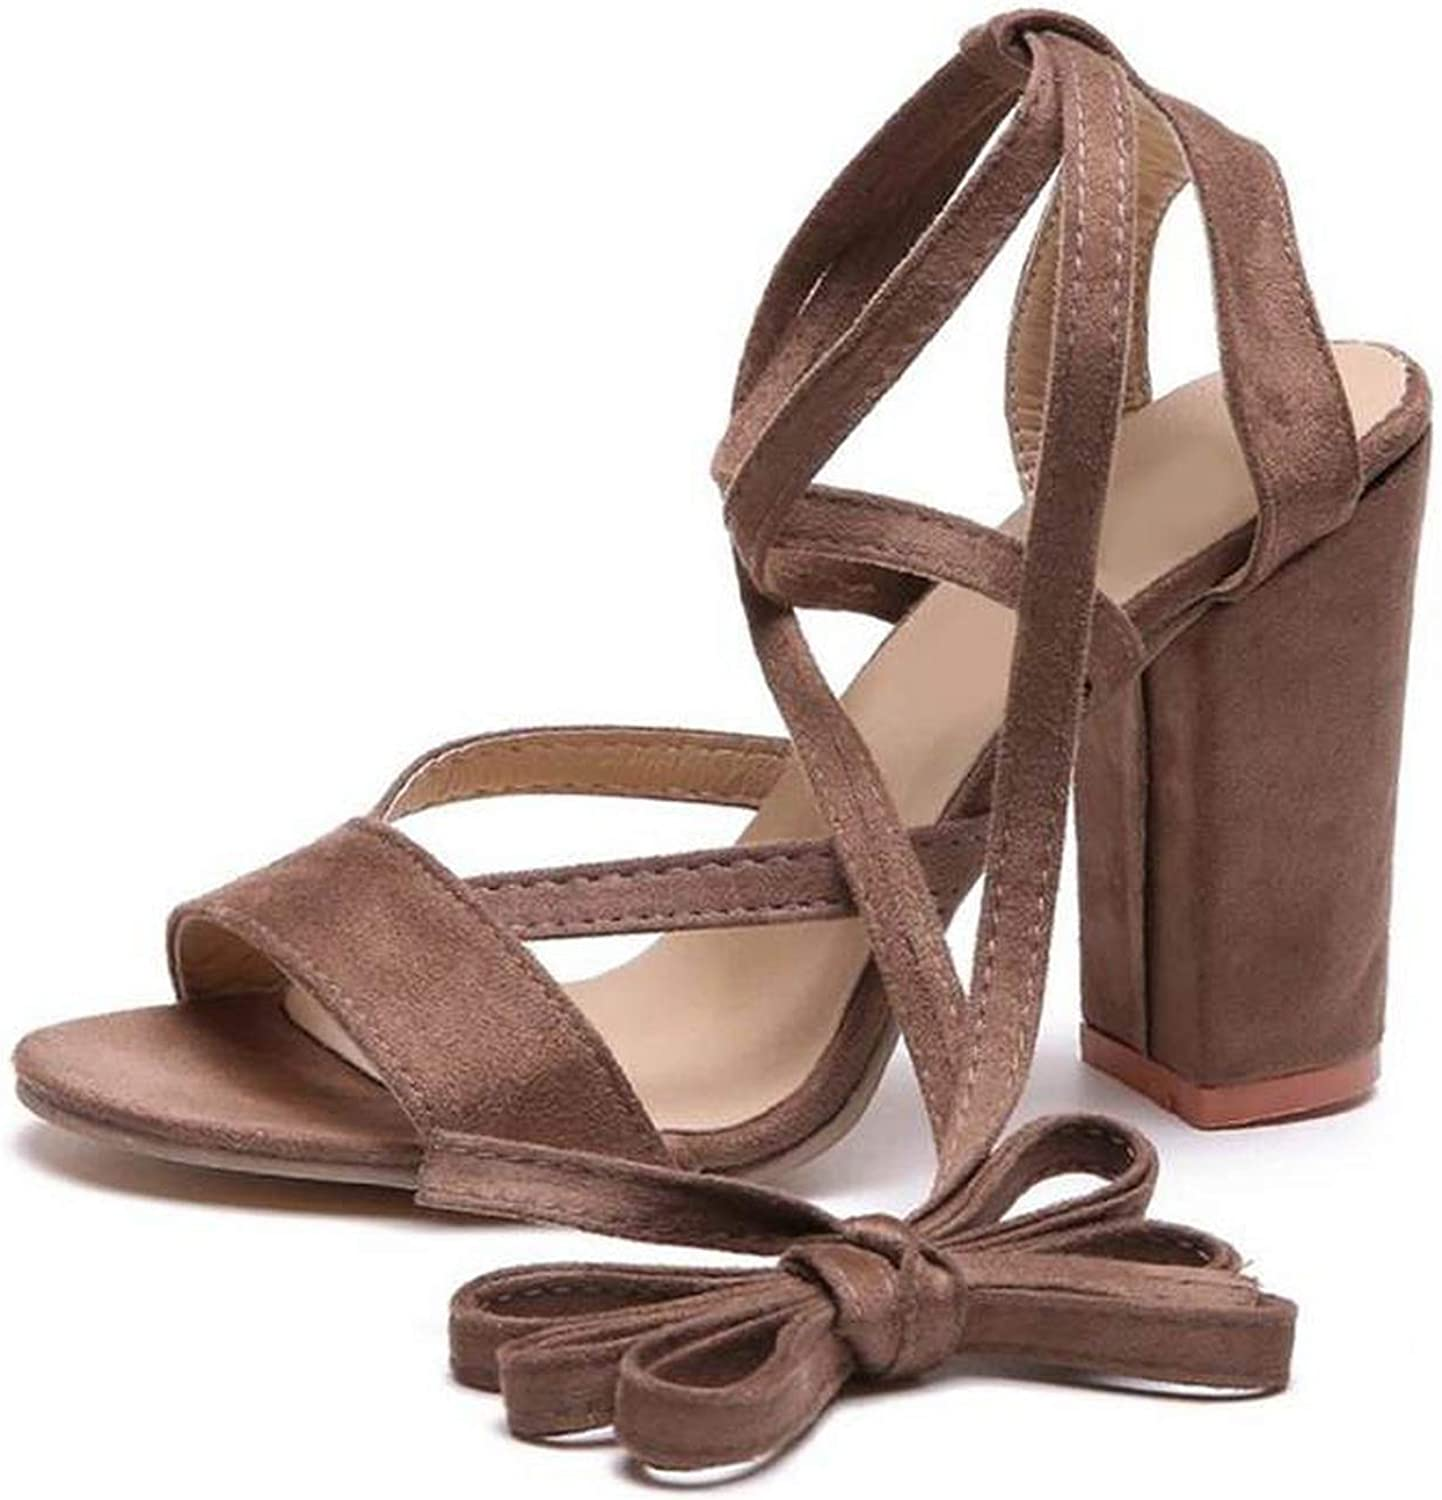 END GAME Women Roman Style Sandals Fashion Sexy Ankle Strap shoes Women Daily Party Sweet Footwear Size 35-39